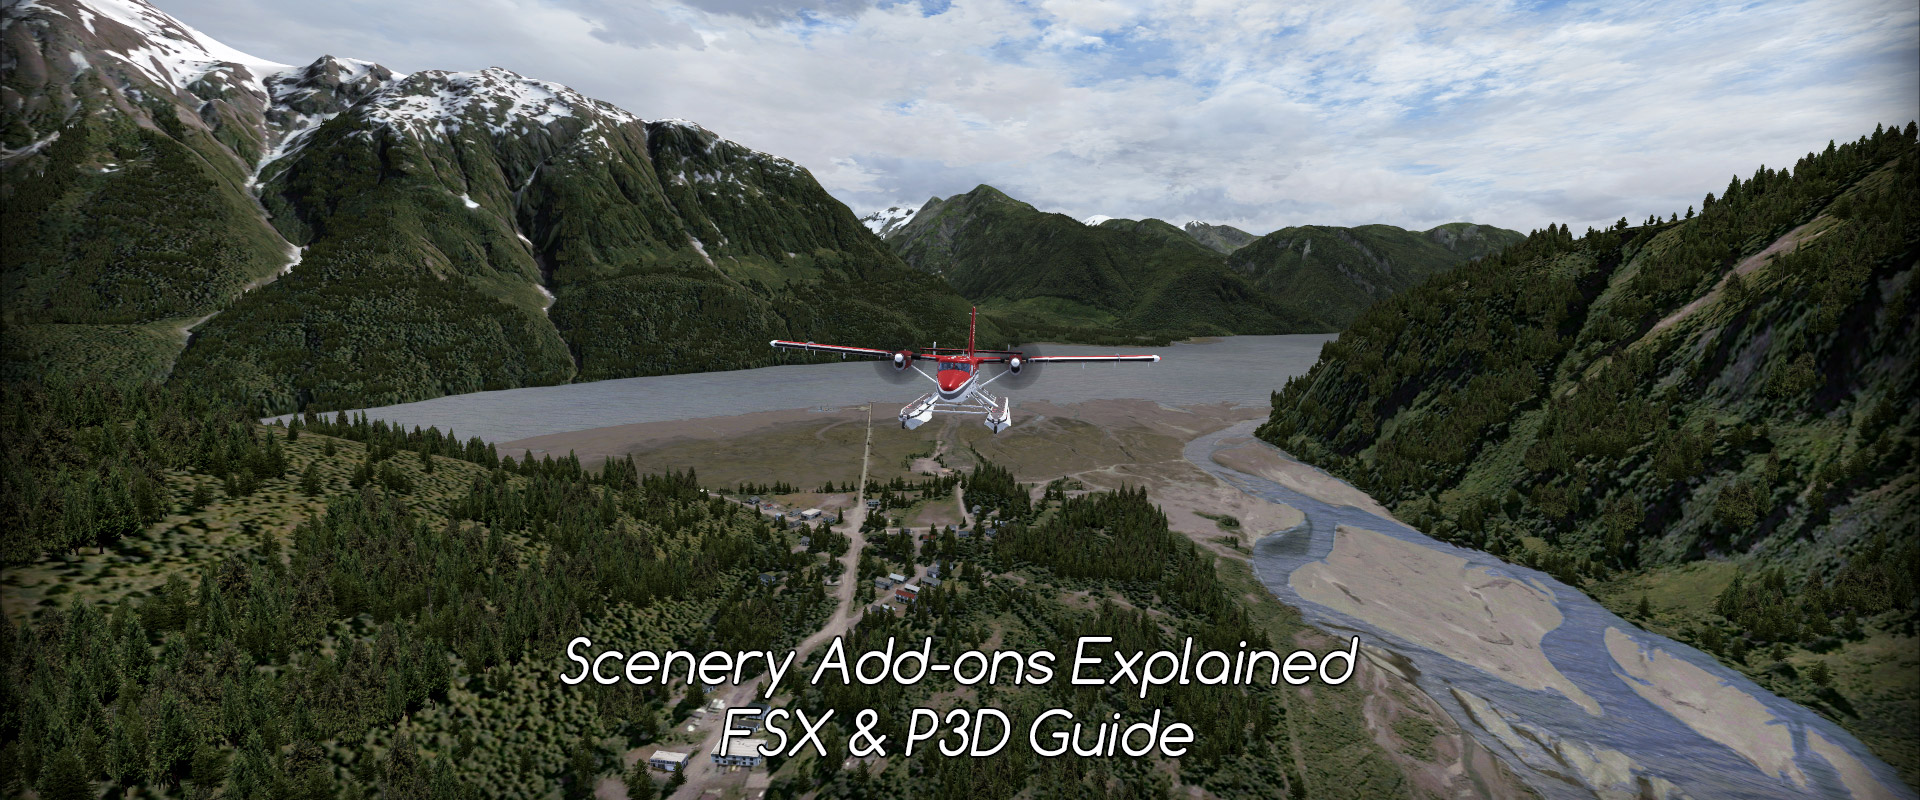 FSX and P3D Add-ons Explained - Guide